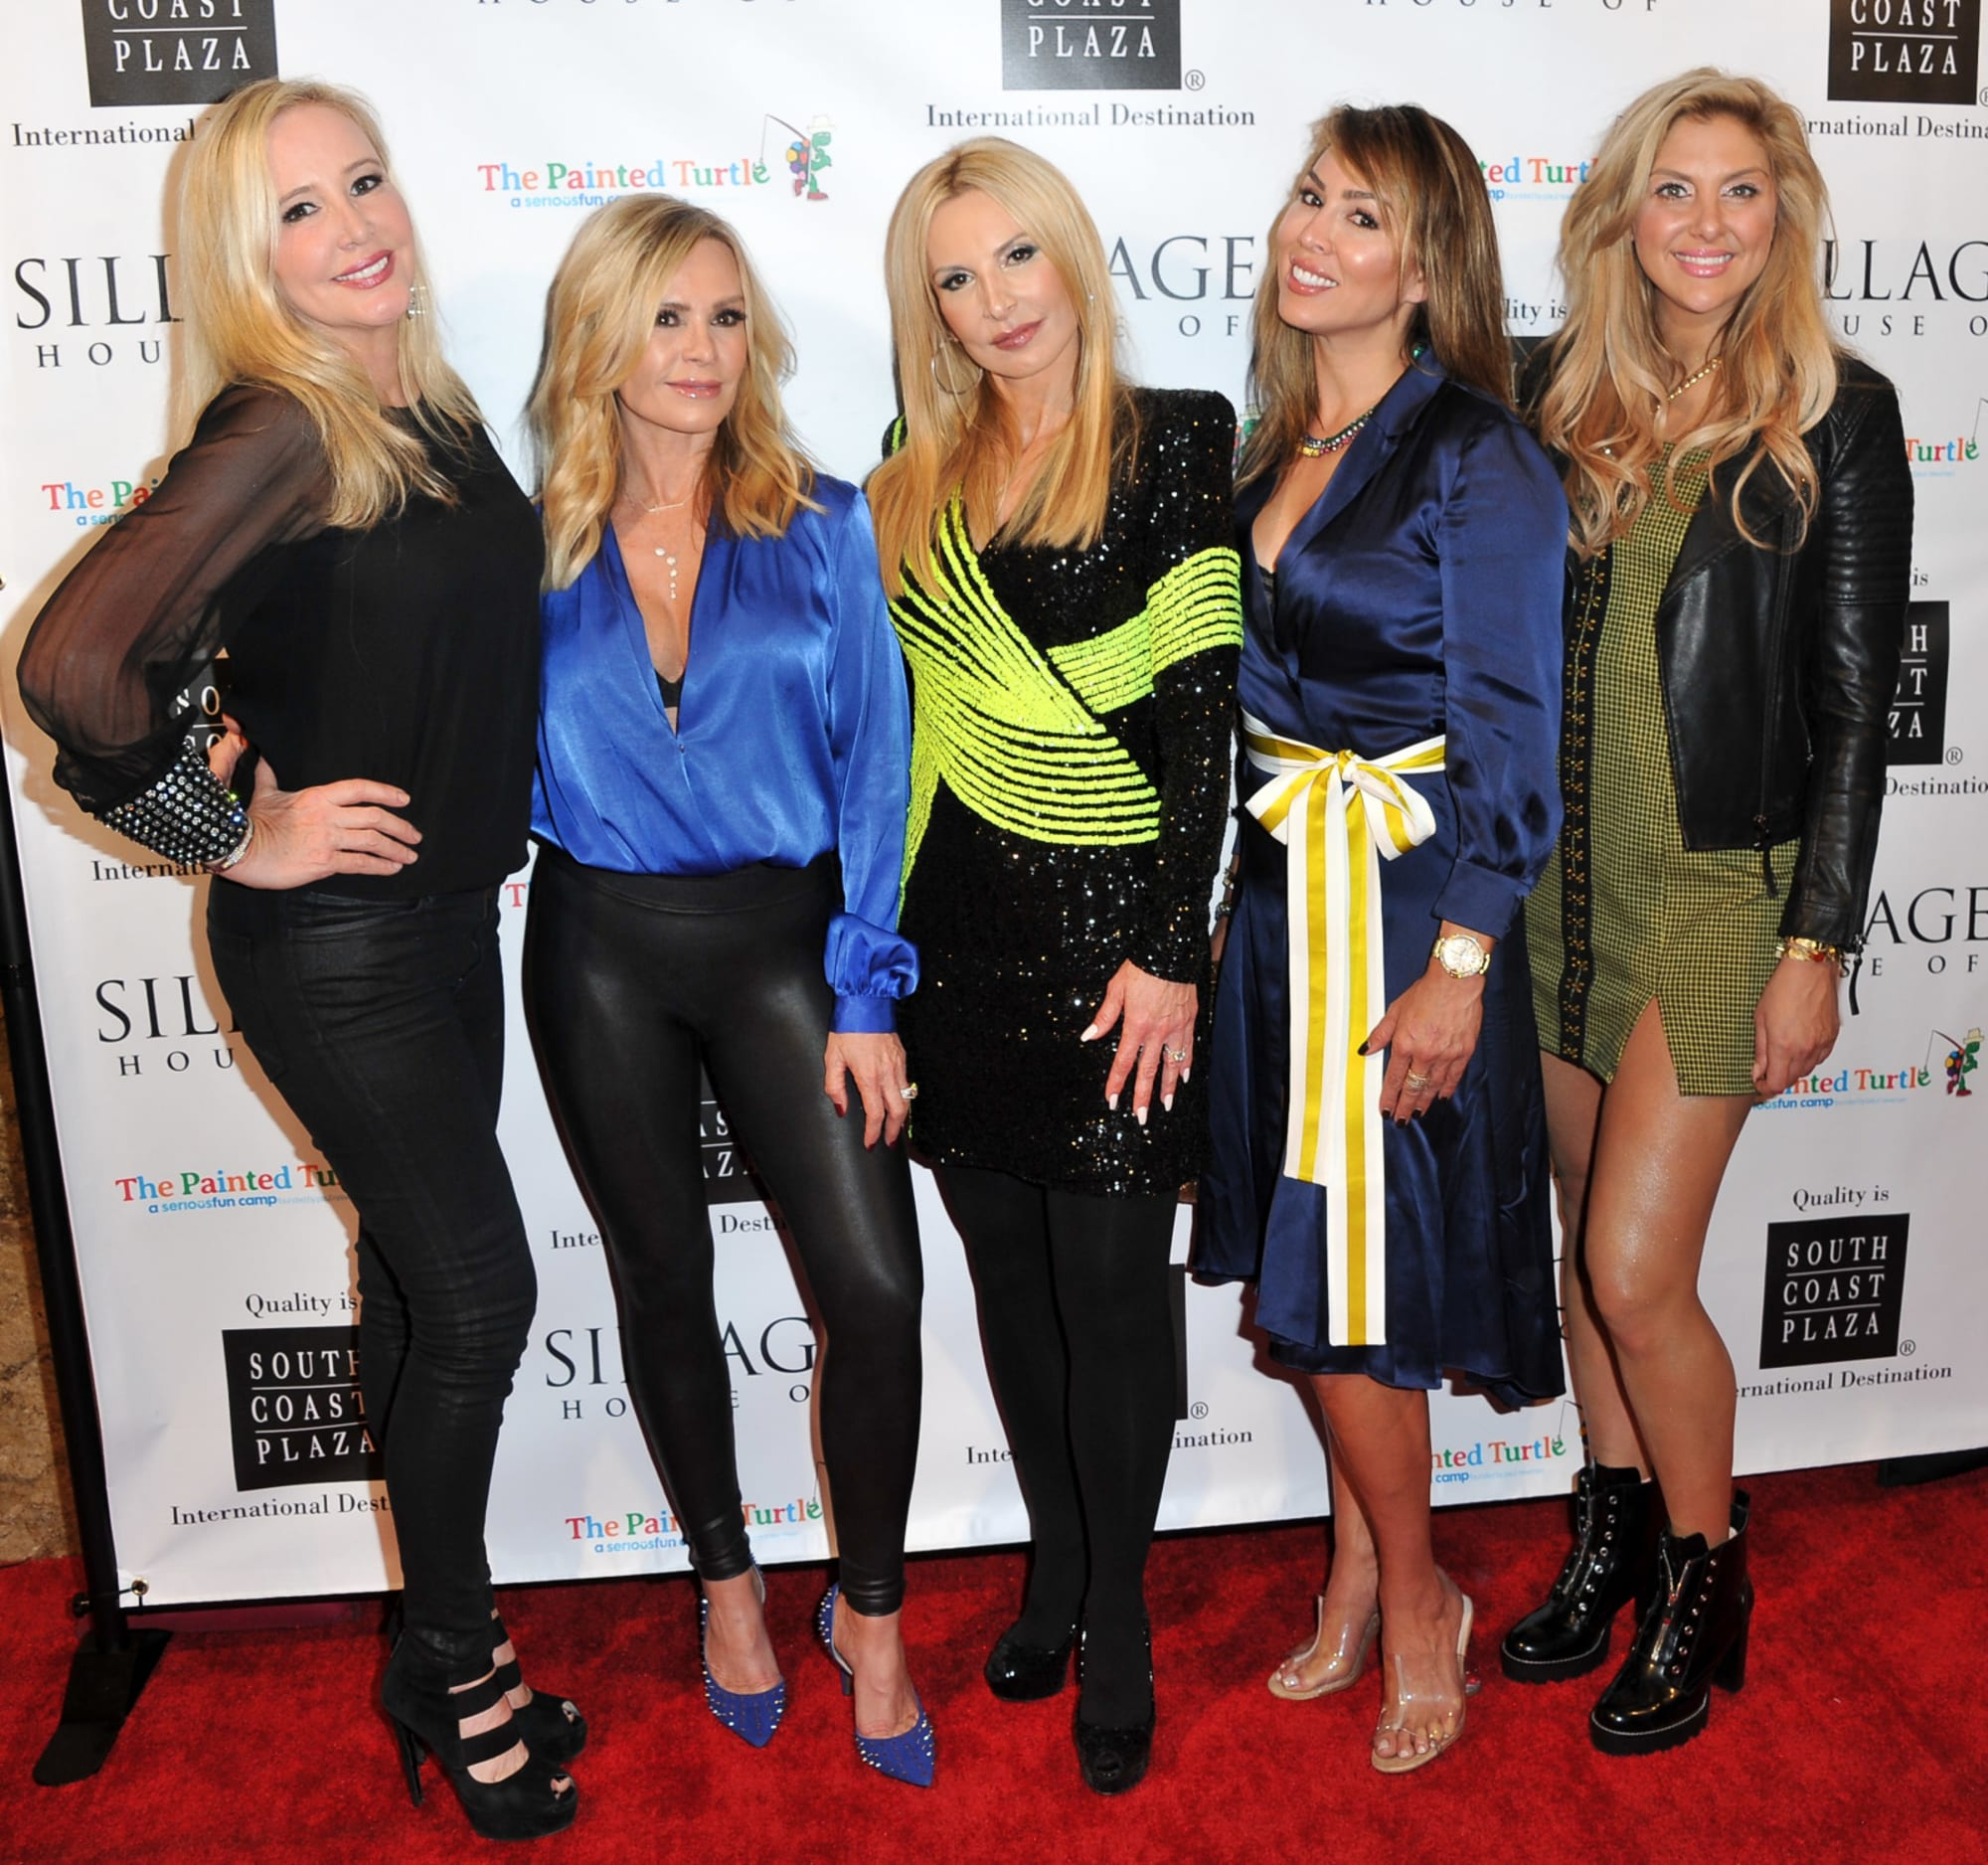 Shannon Beador poses semi nude on Instagram after 50-lb